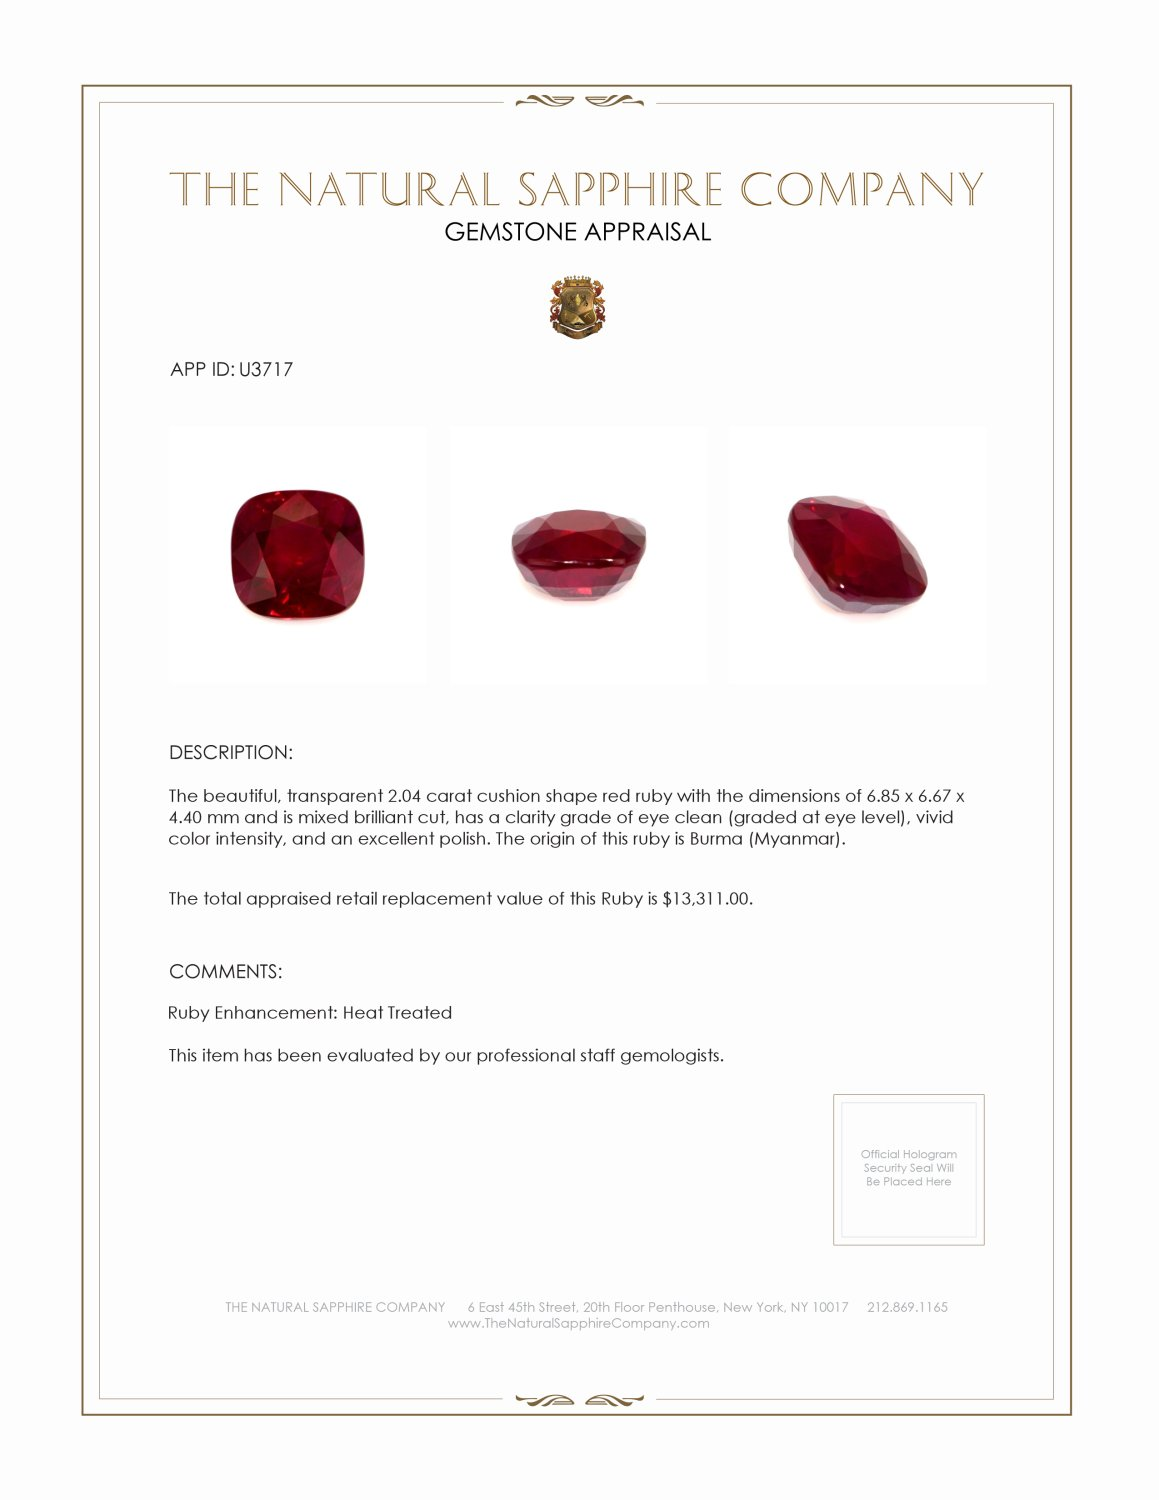 Natural Ruby U3717 Certification 4